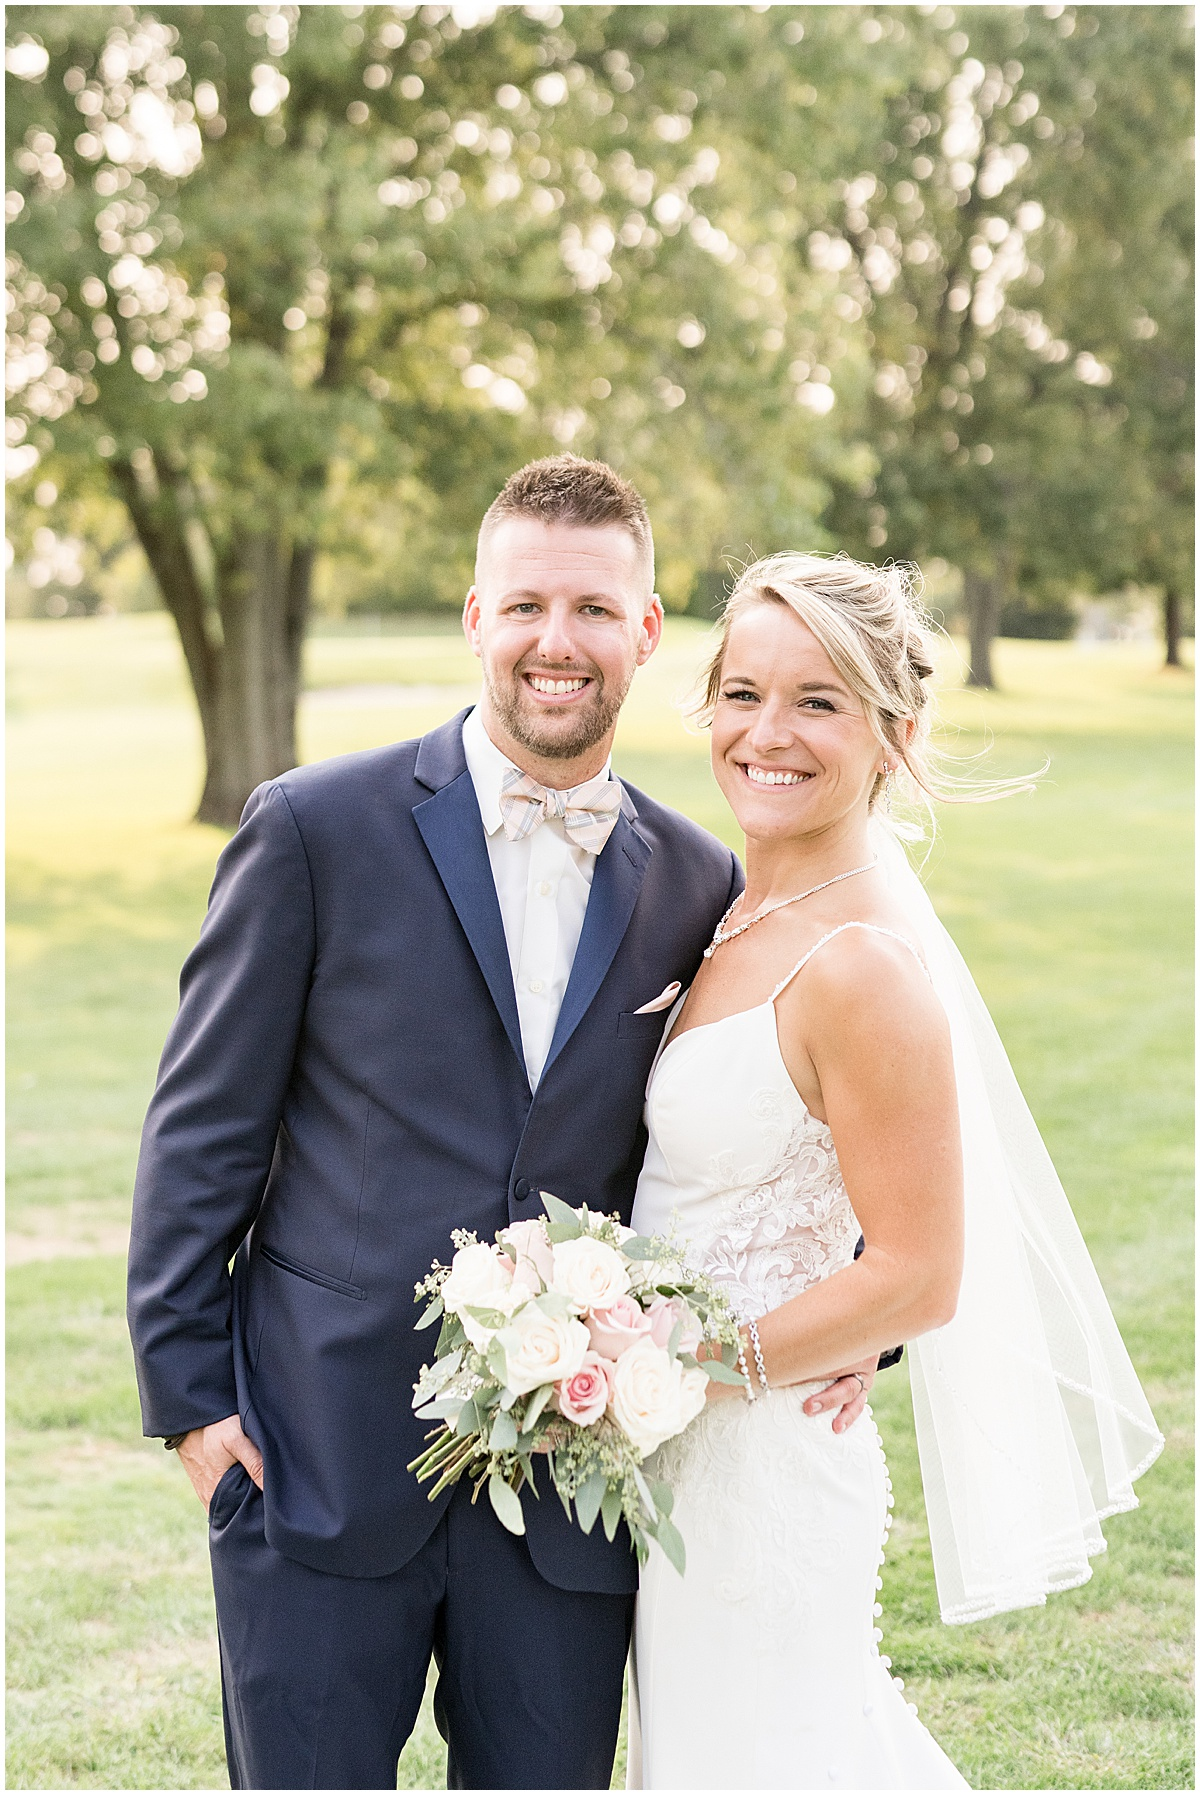 Bride and groom after wedding at The Edge in Anderson, Indiana